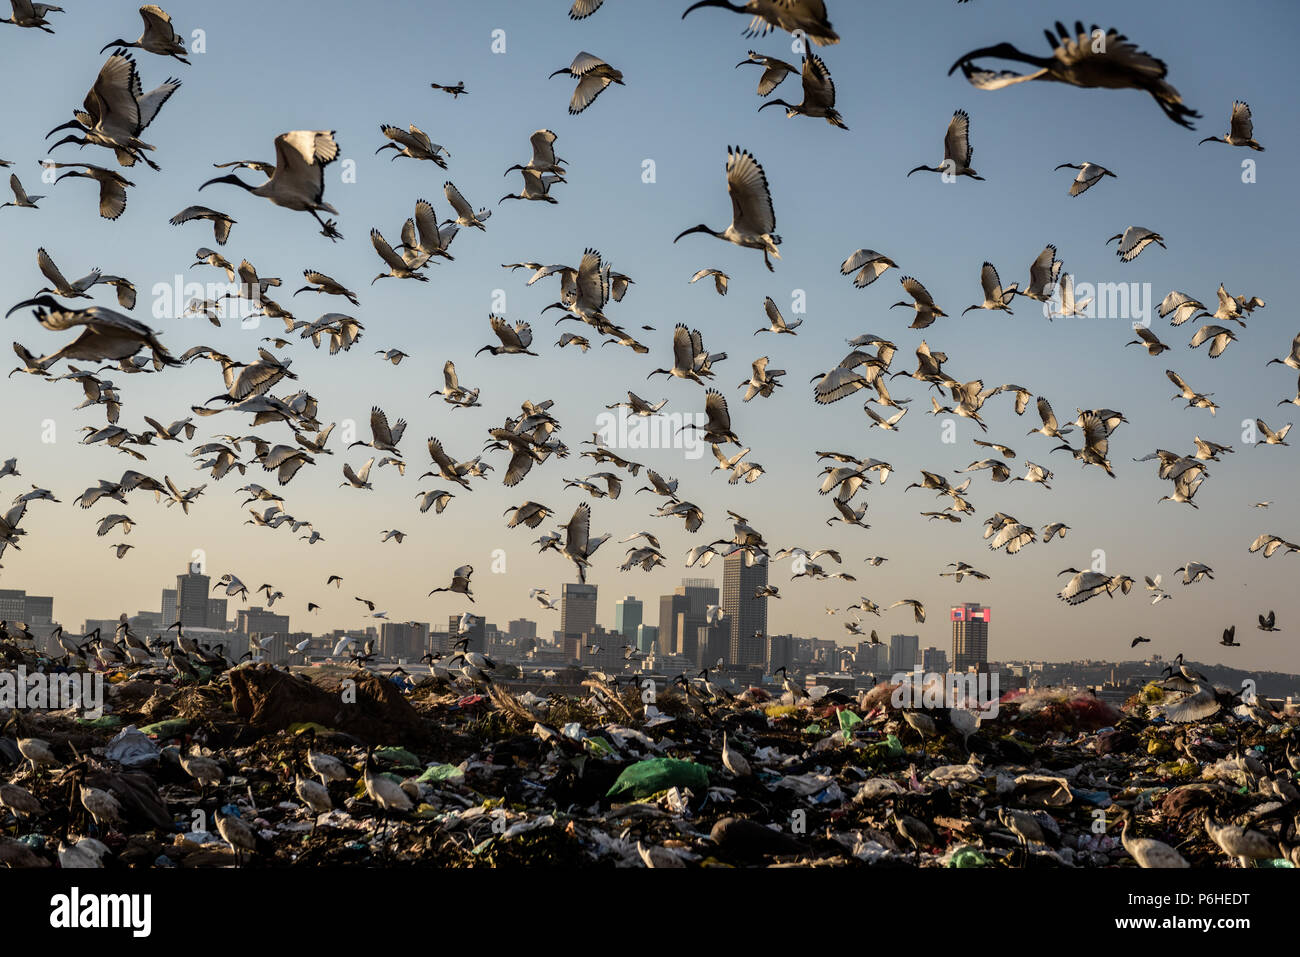 South Africa's Robinson Deep landfill near Johannesburg's Turffontein race course has been colonised by Sacred Ibis - Stock Image